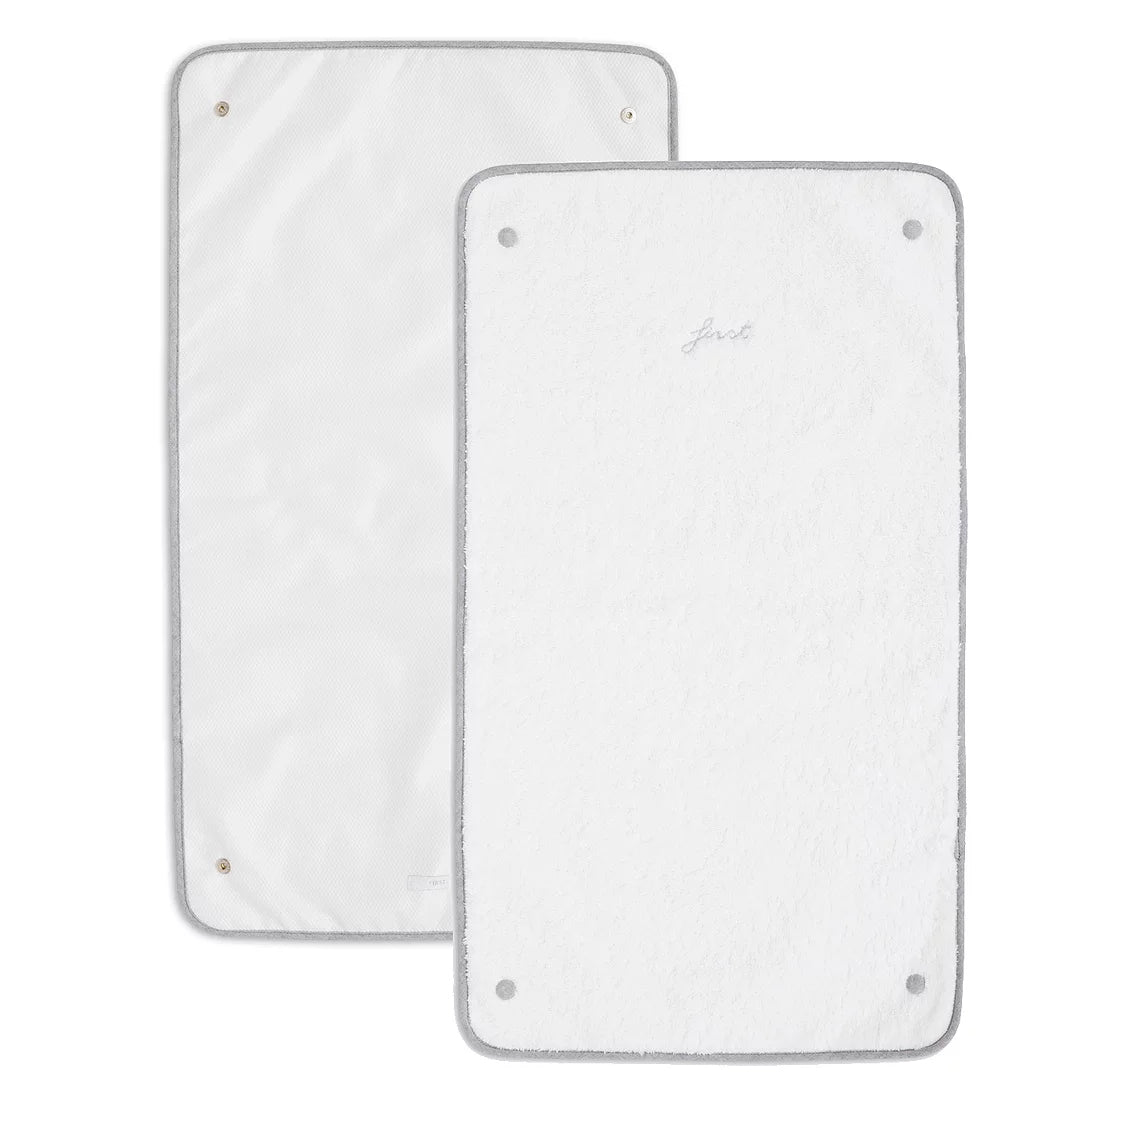 First Endless Grey Changing Pad Extra Towels